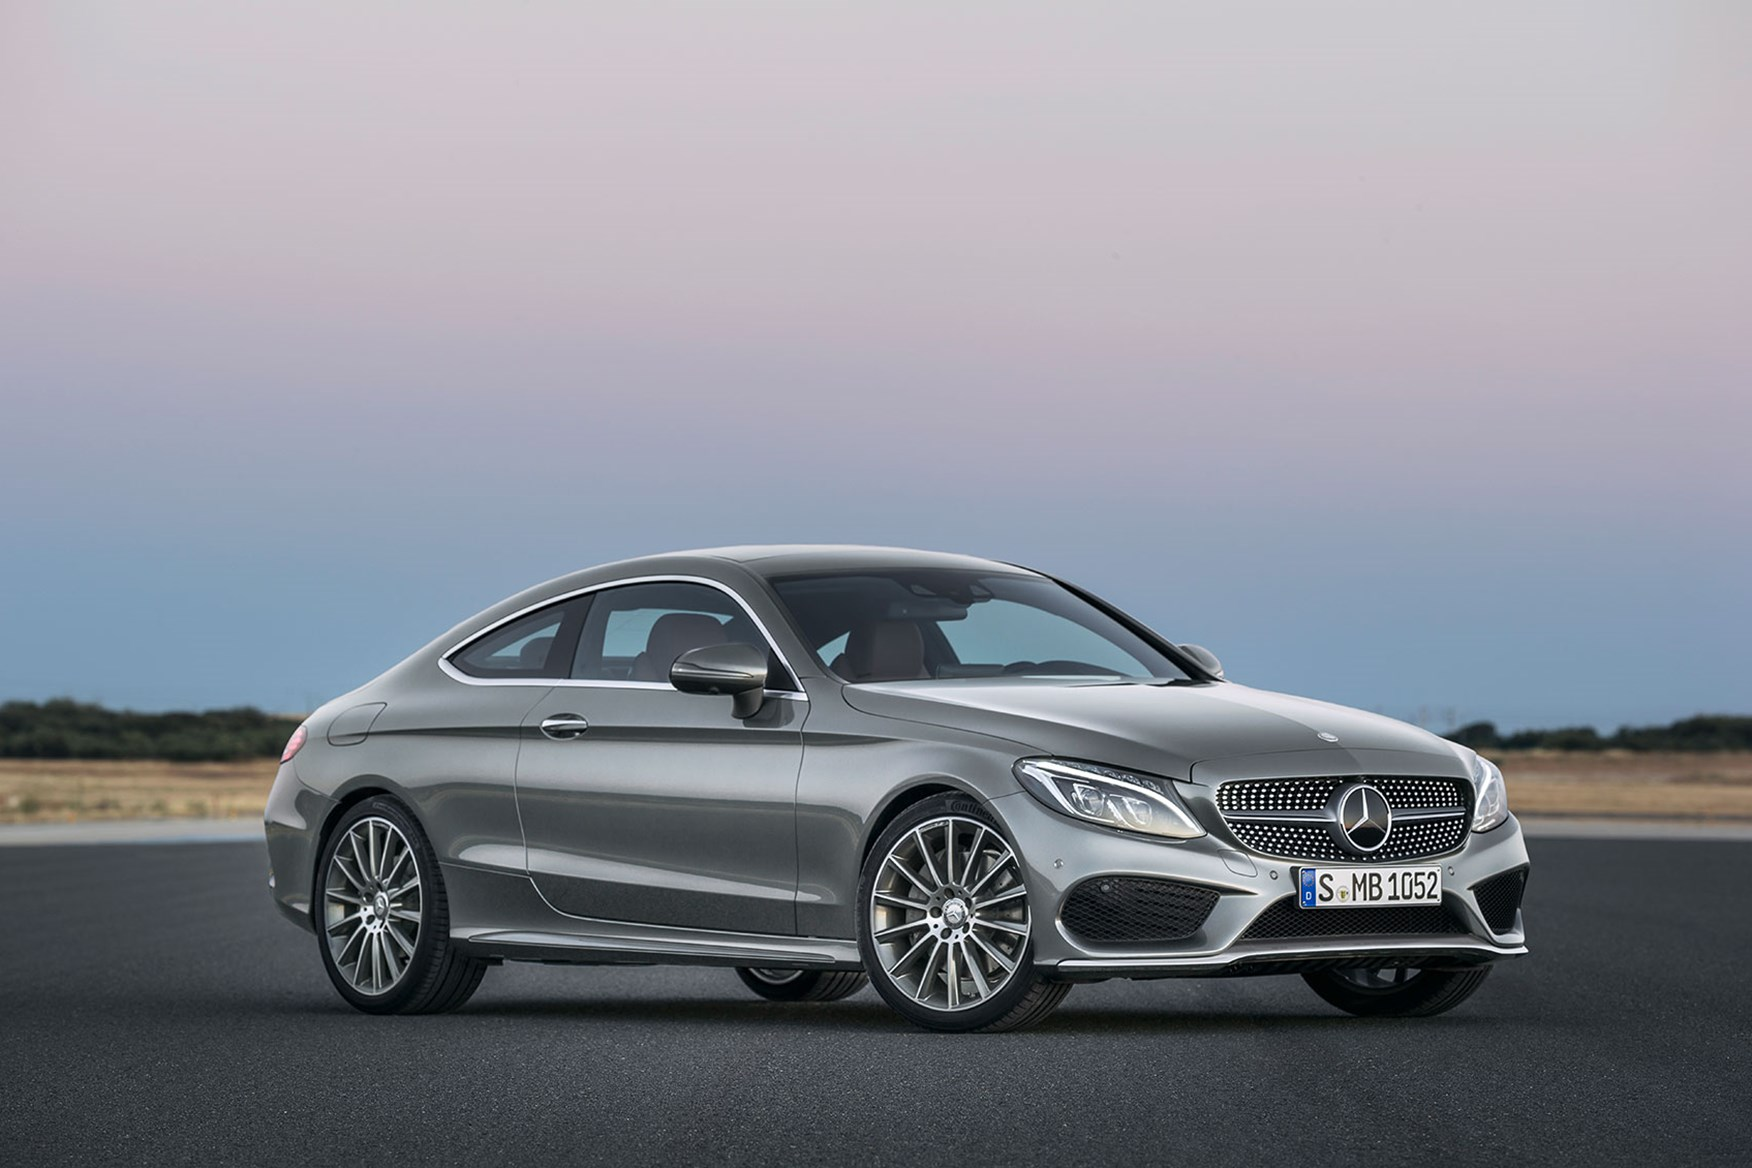 New 2016 Mercedes C-class Coupe takes fashion lessons from the ...